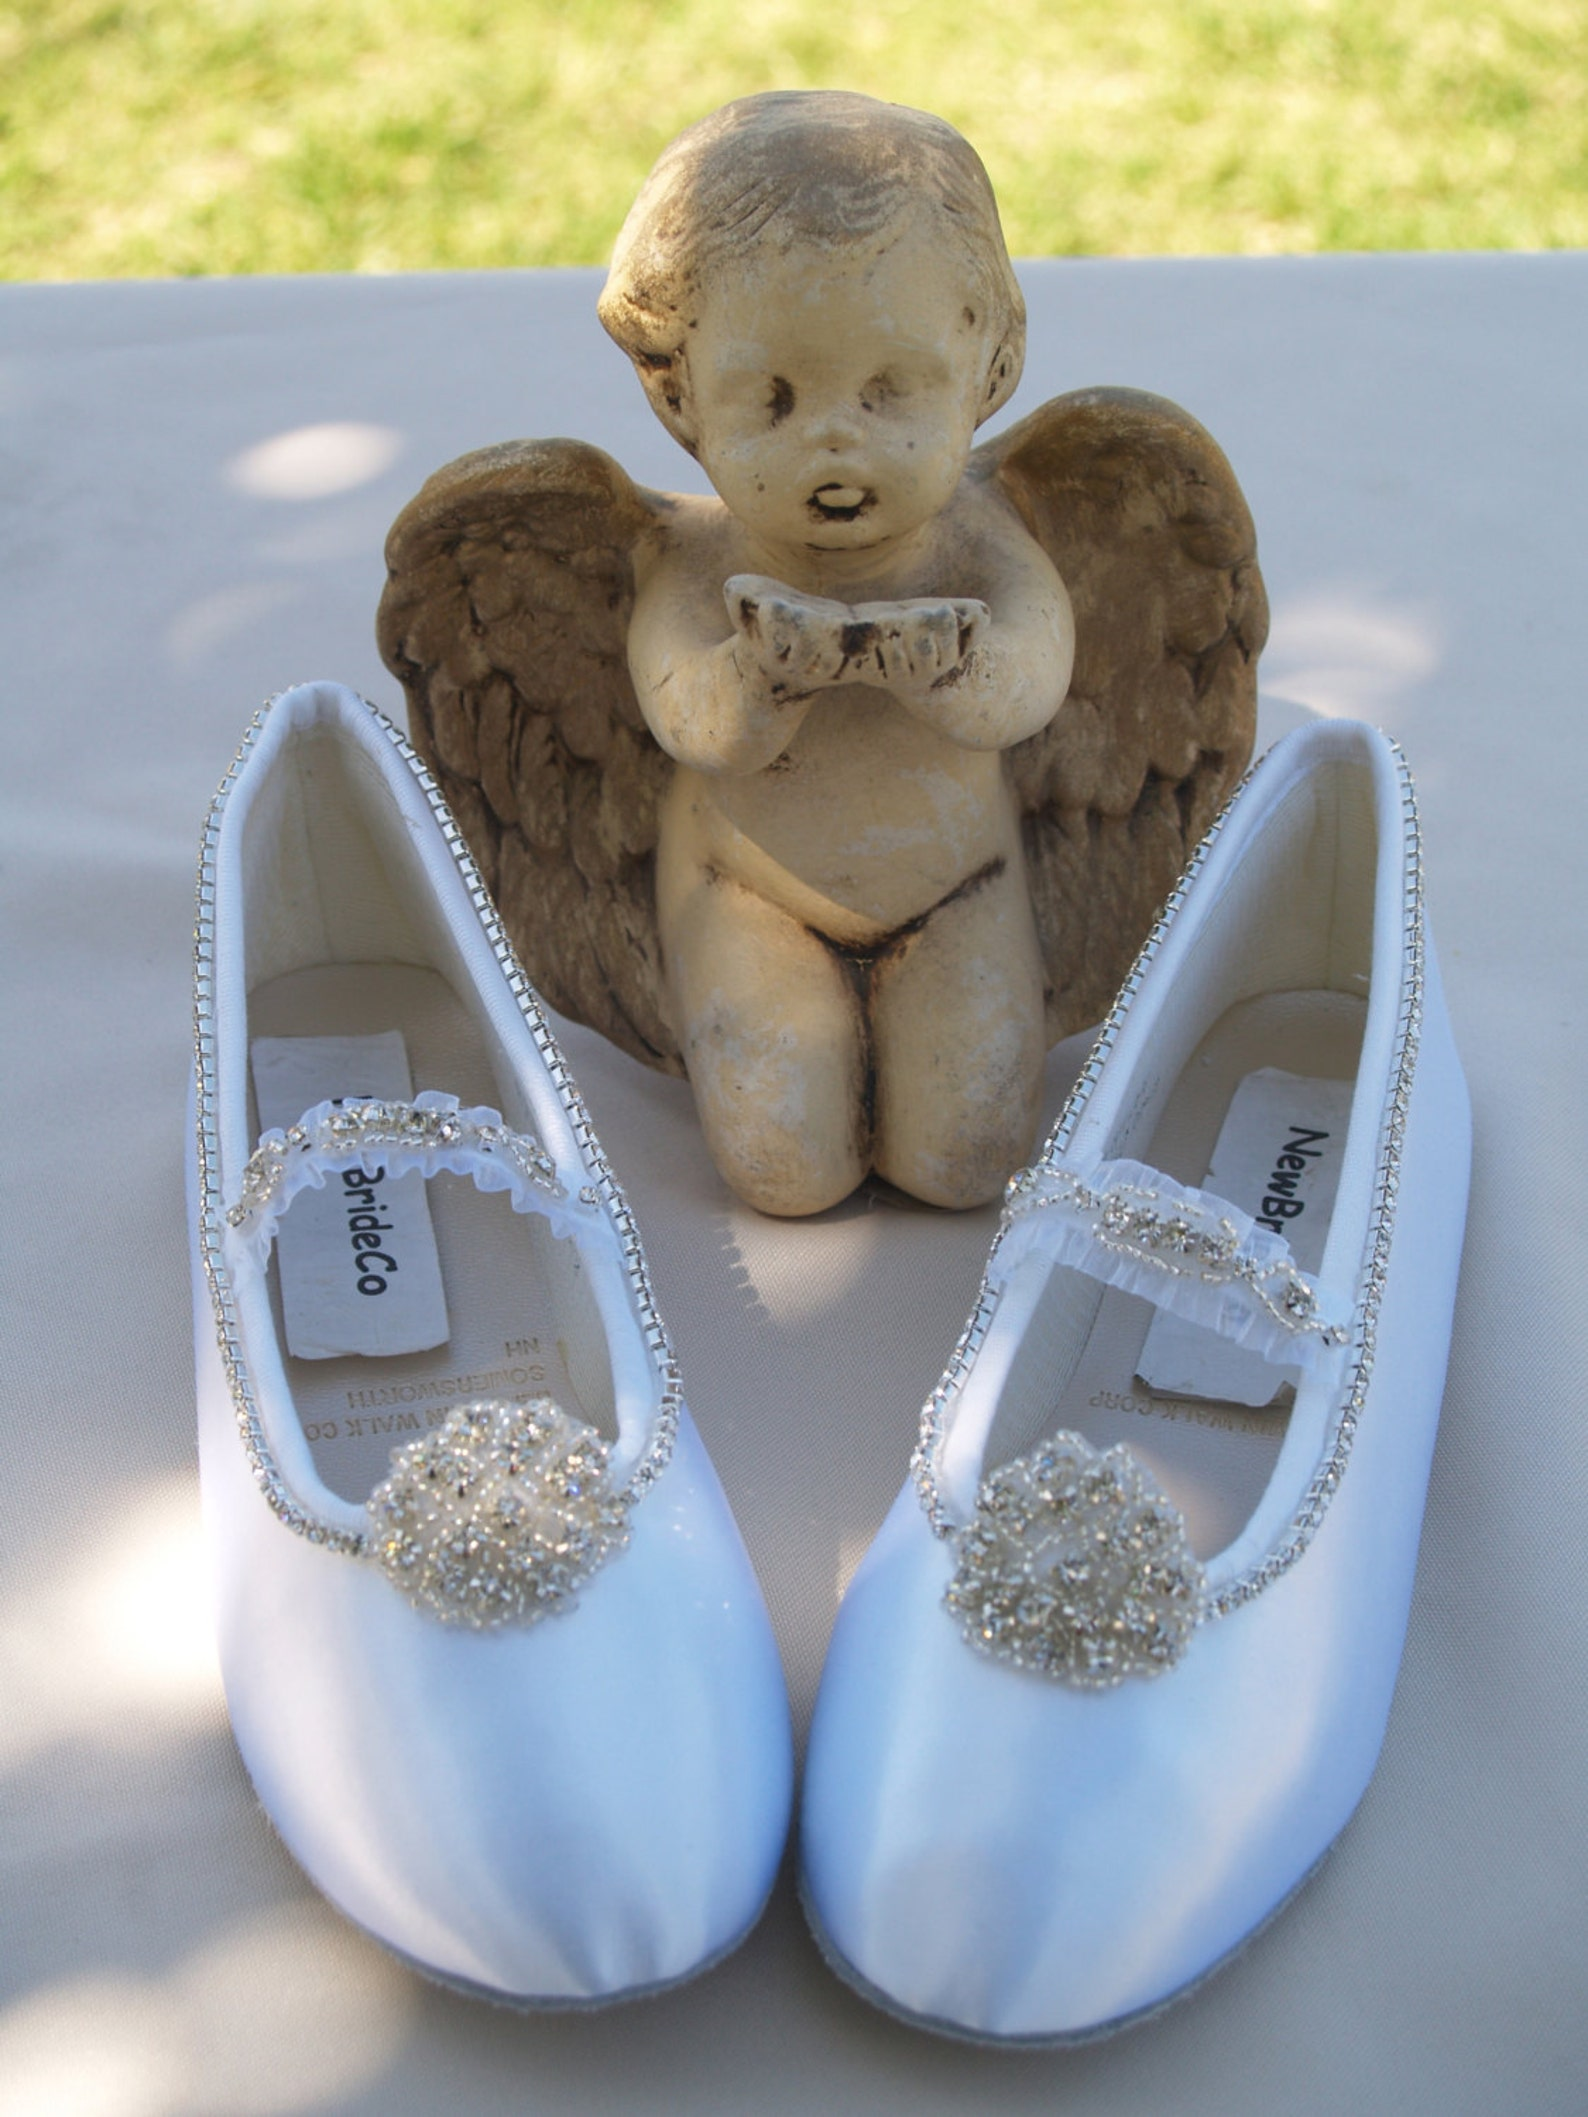 satin shoes flower girls crystals flower with strap crystals edging flats, girls ballet style slippers, closed toe flats,chic, p